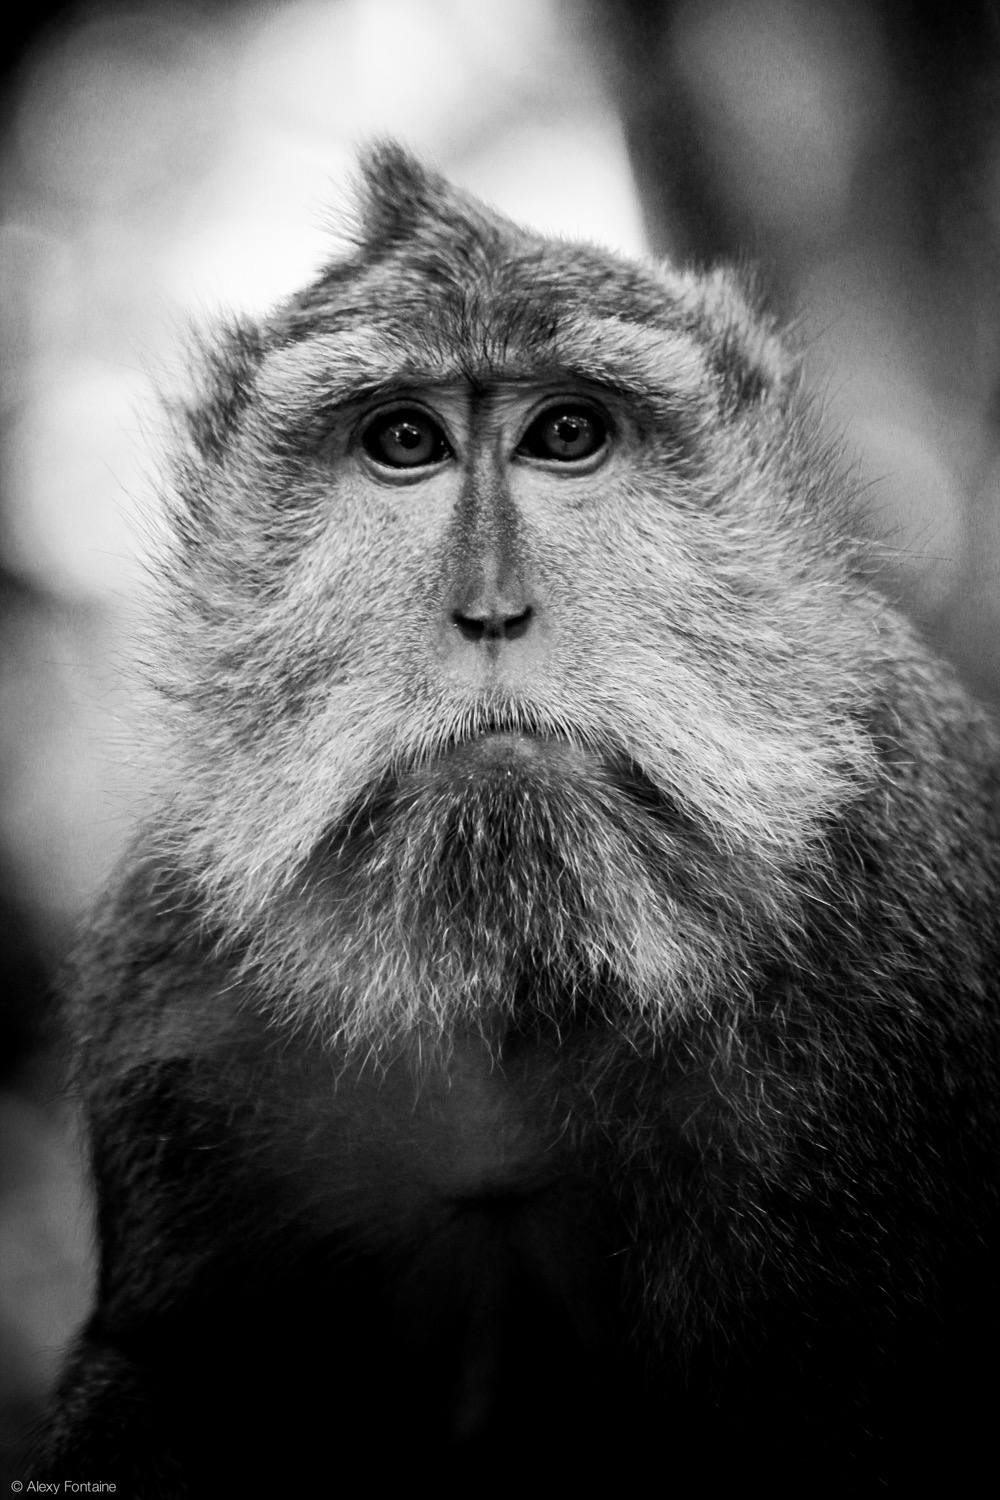 MONKEY FOREST - PERSO